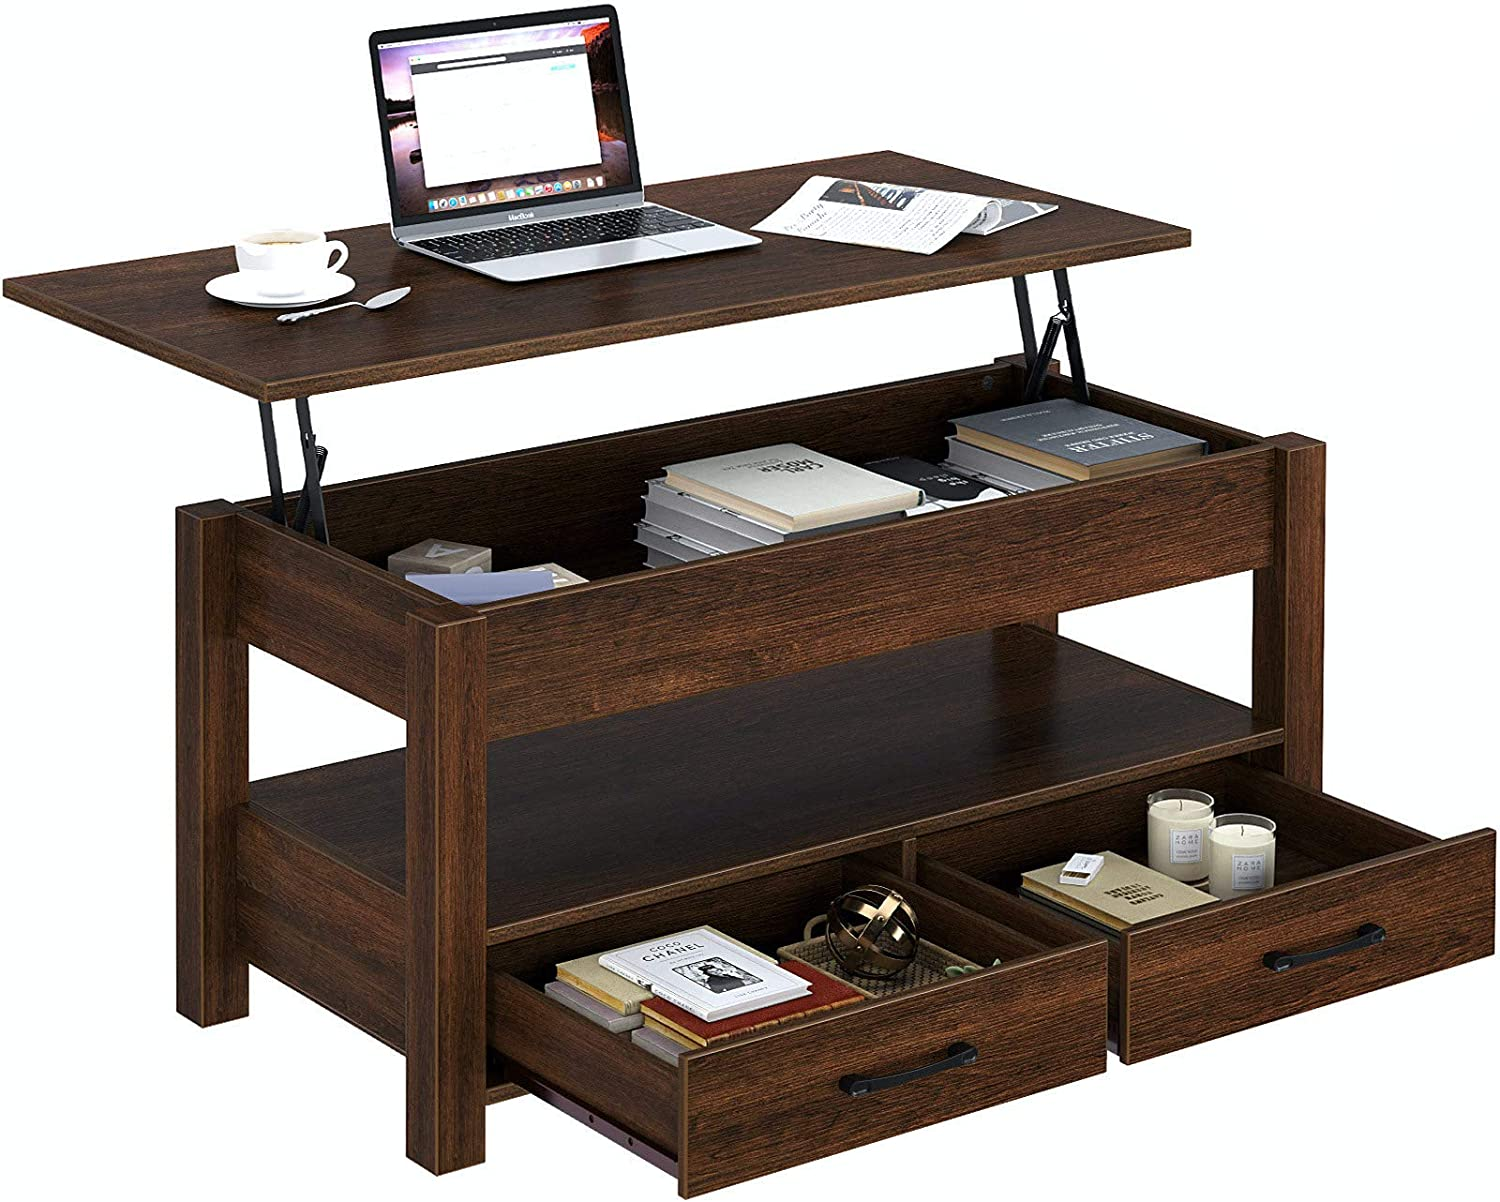 Rolanstar Coffee New product!! Table Ranking TOP4 Lift Top with and H Drawers